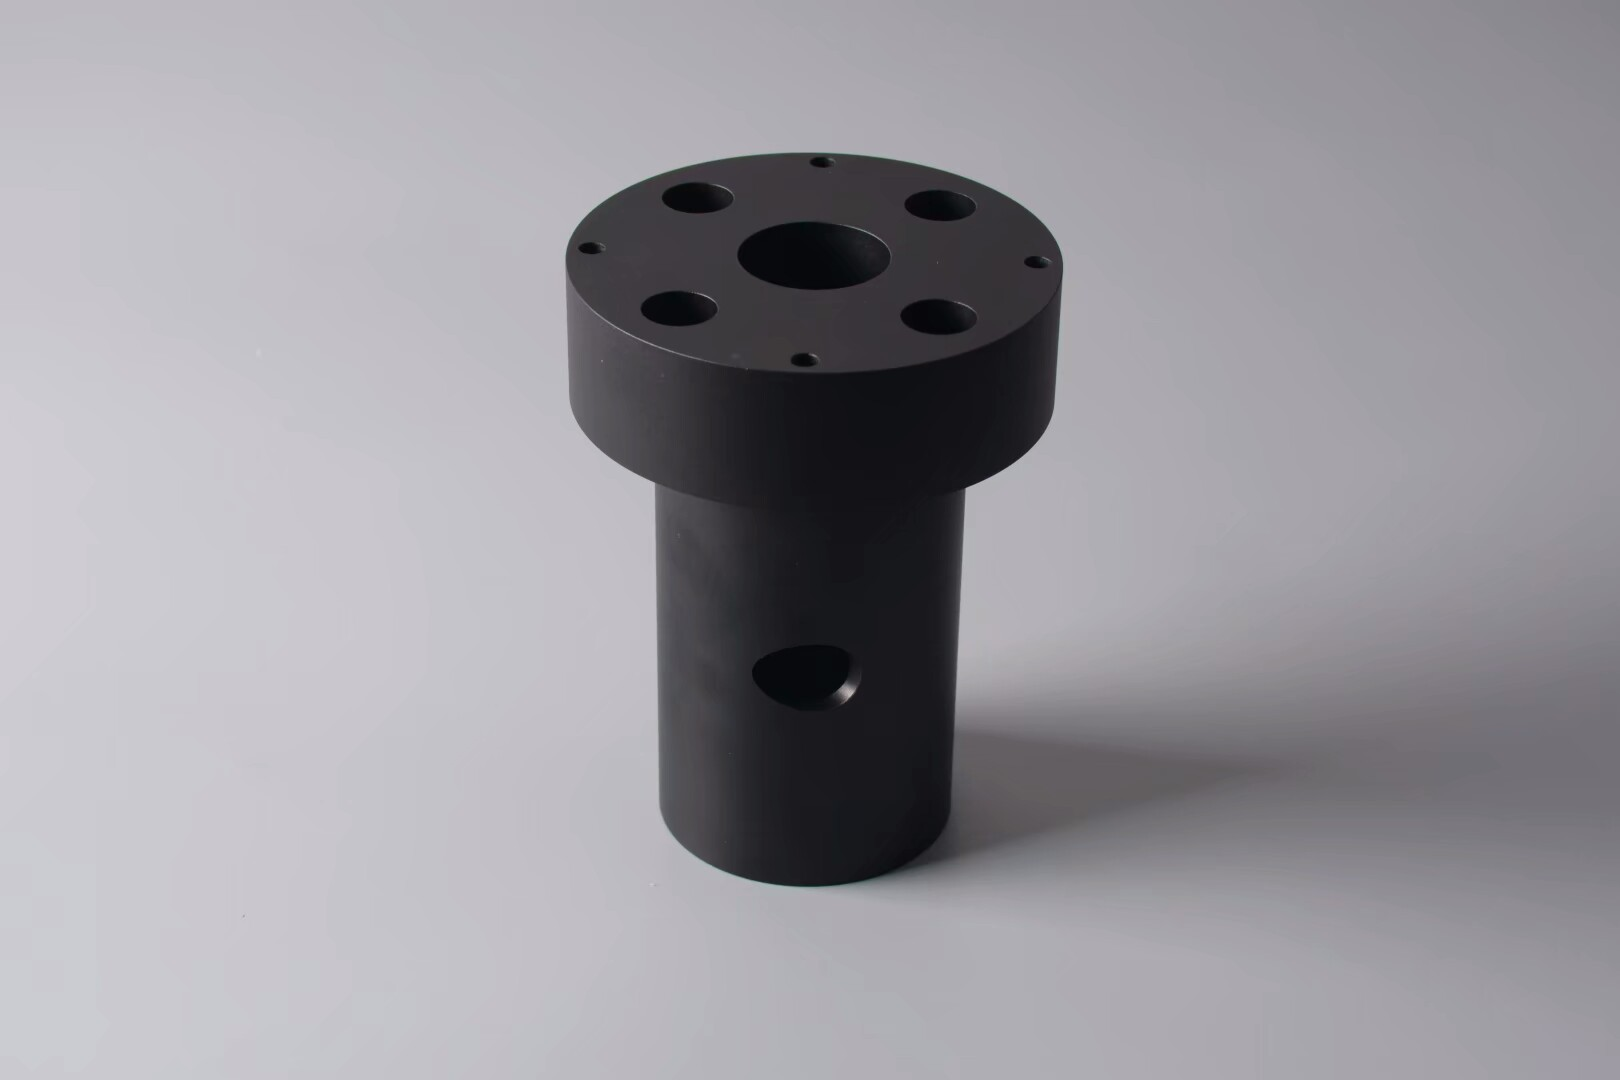 6061 part with Hard coat Black Anodized